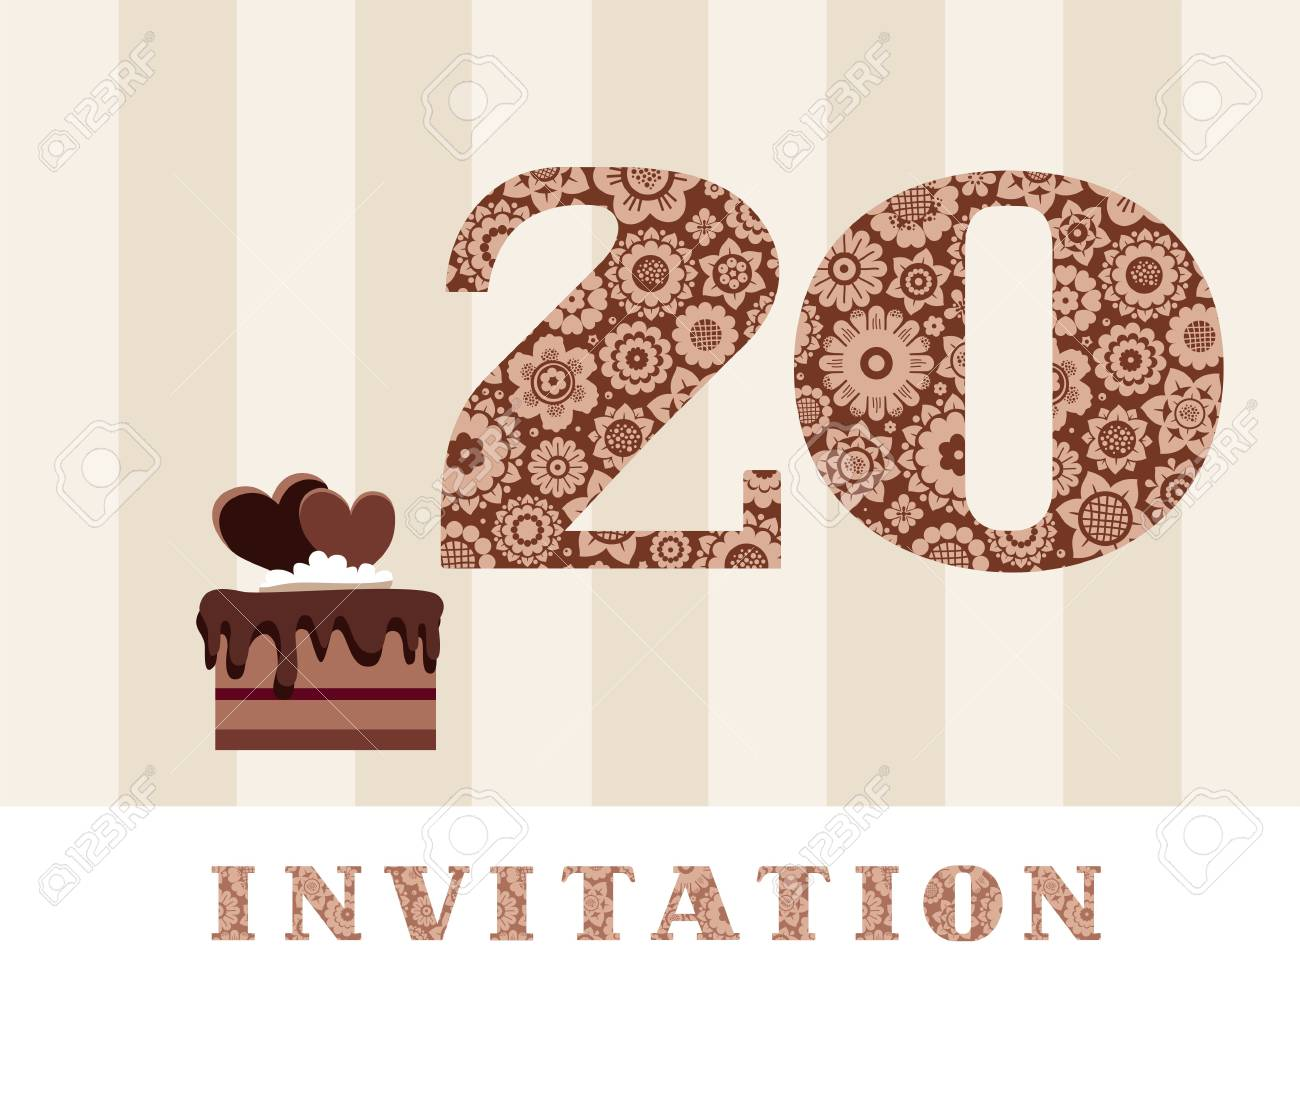 Invitation Card 20 Years Old With Chocolate Cake Heart The To